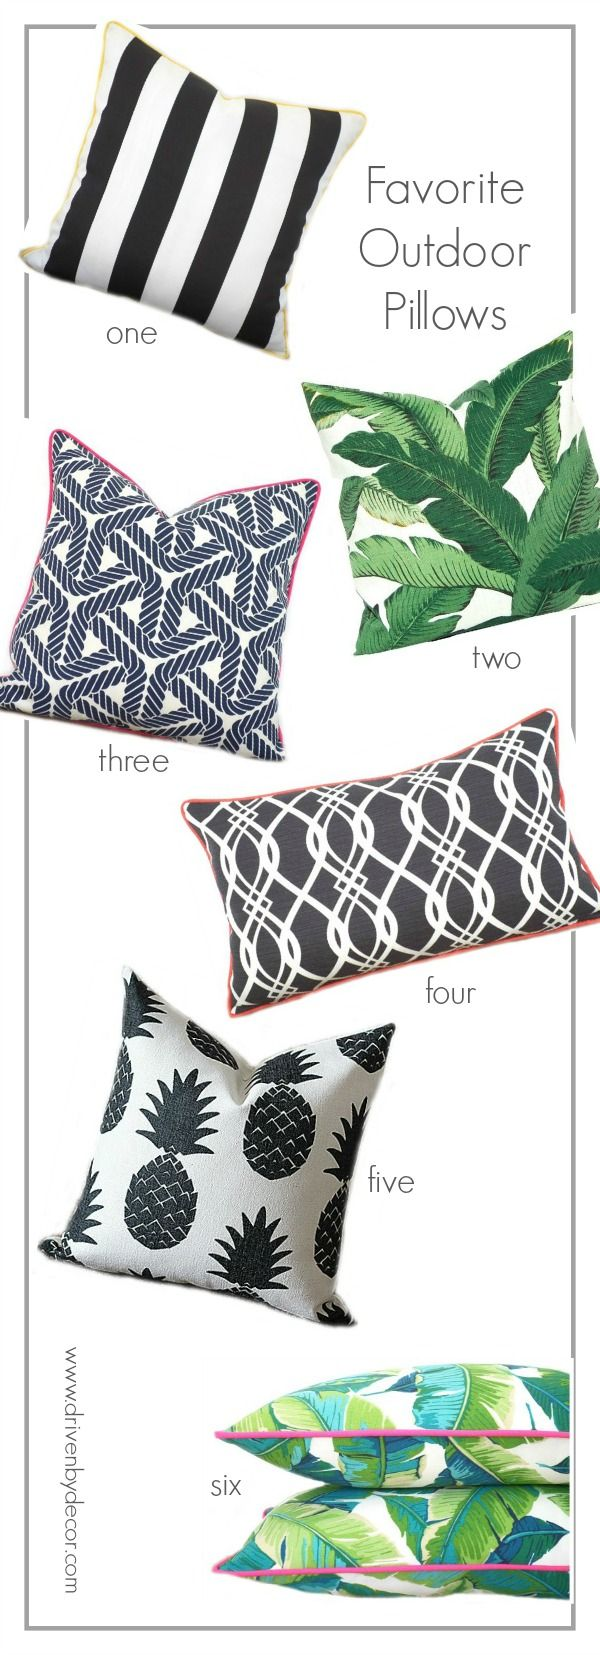 Loving these fun, stylish outdoor pillows!